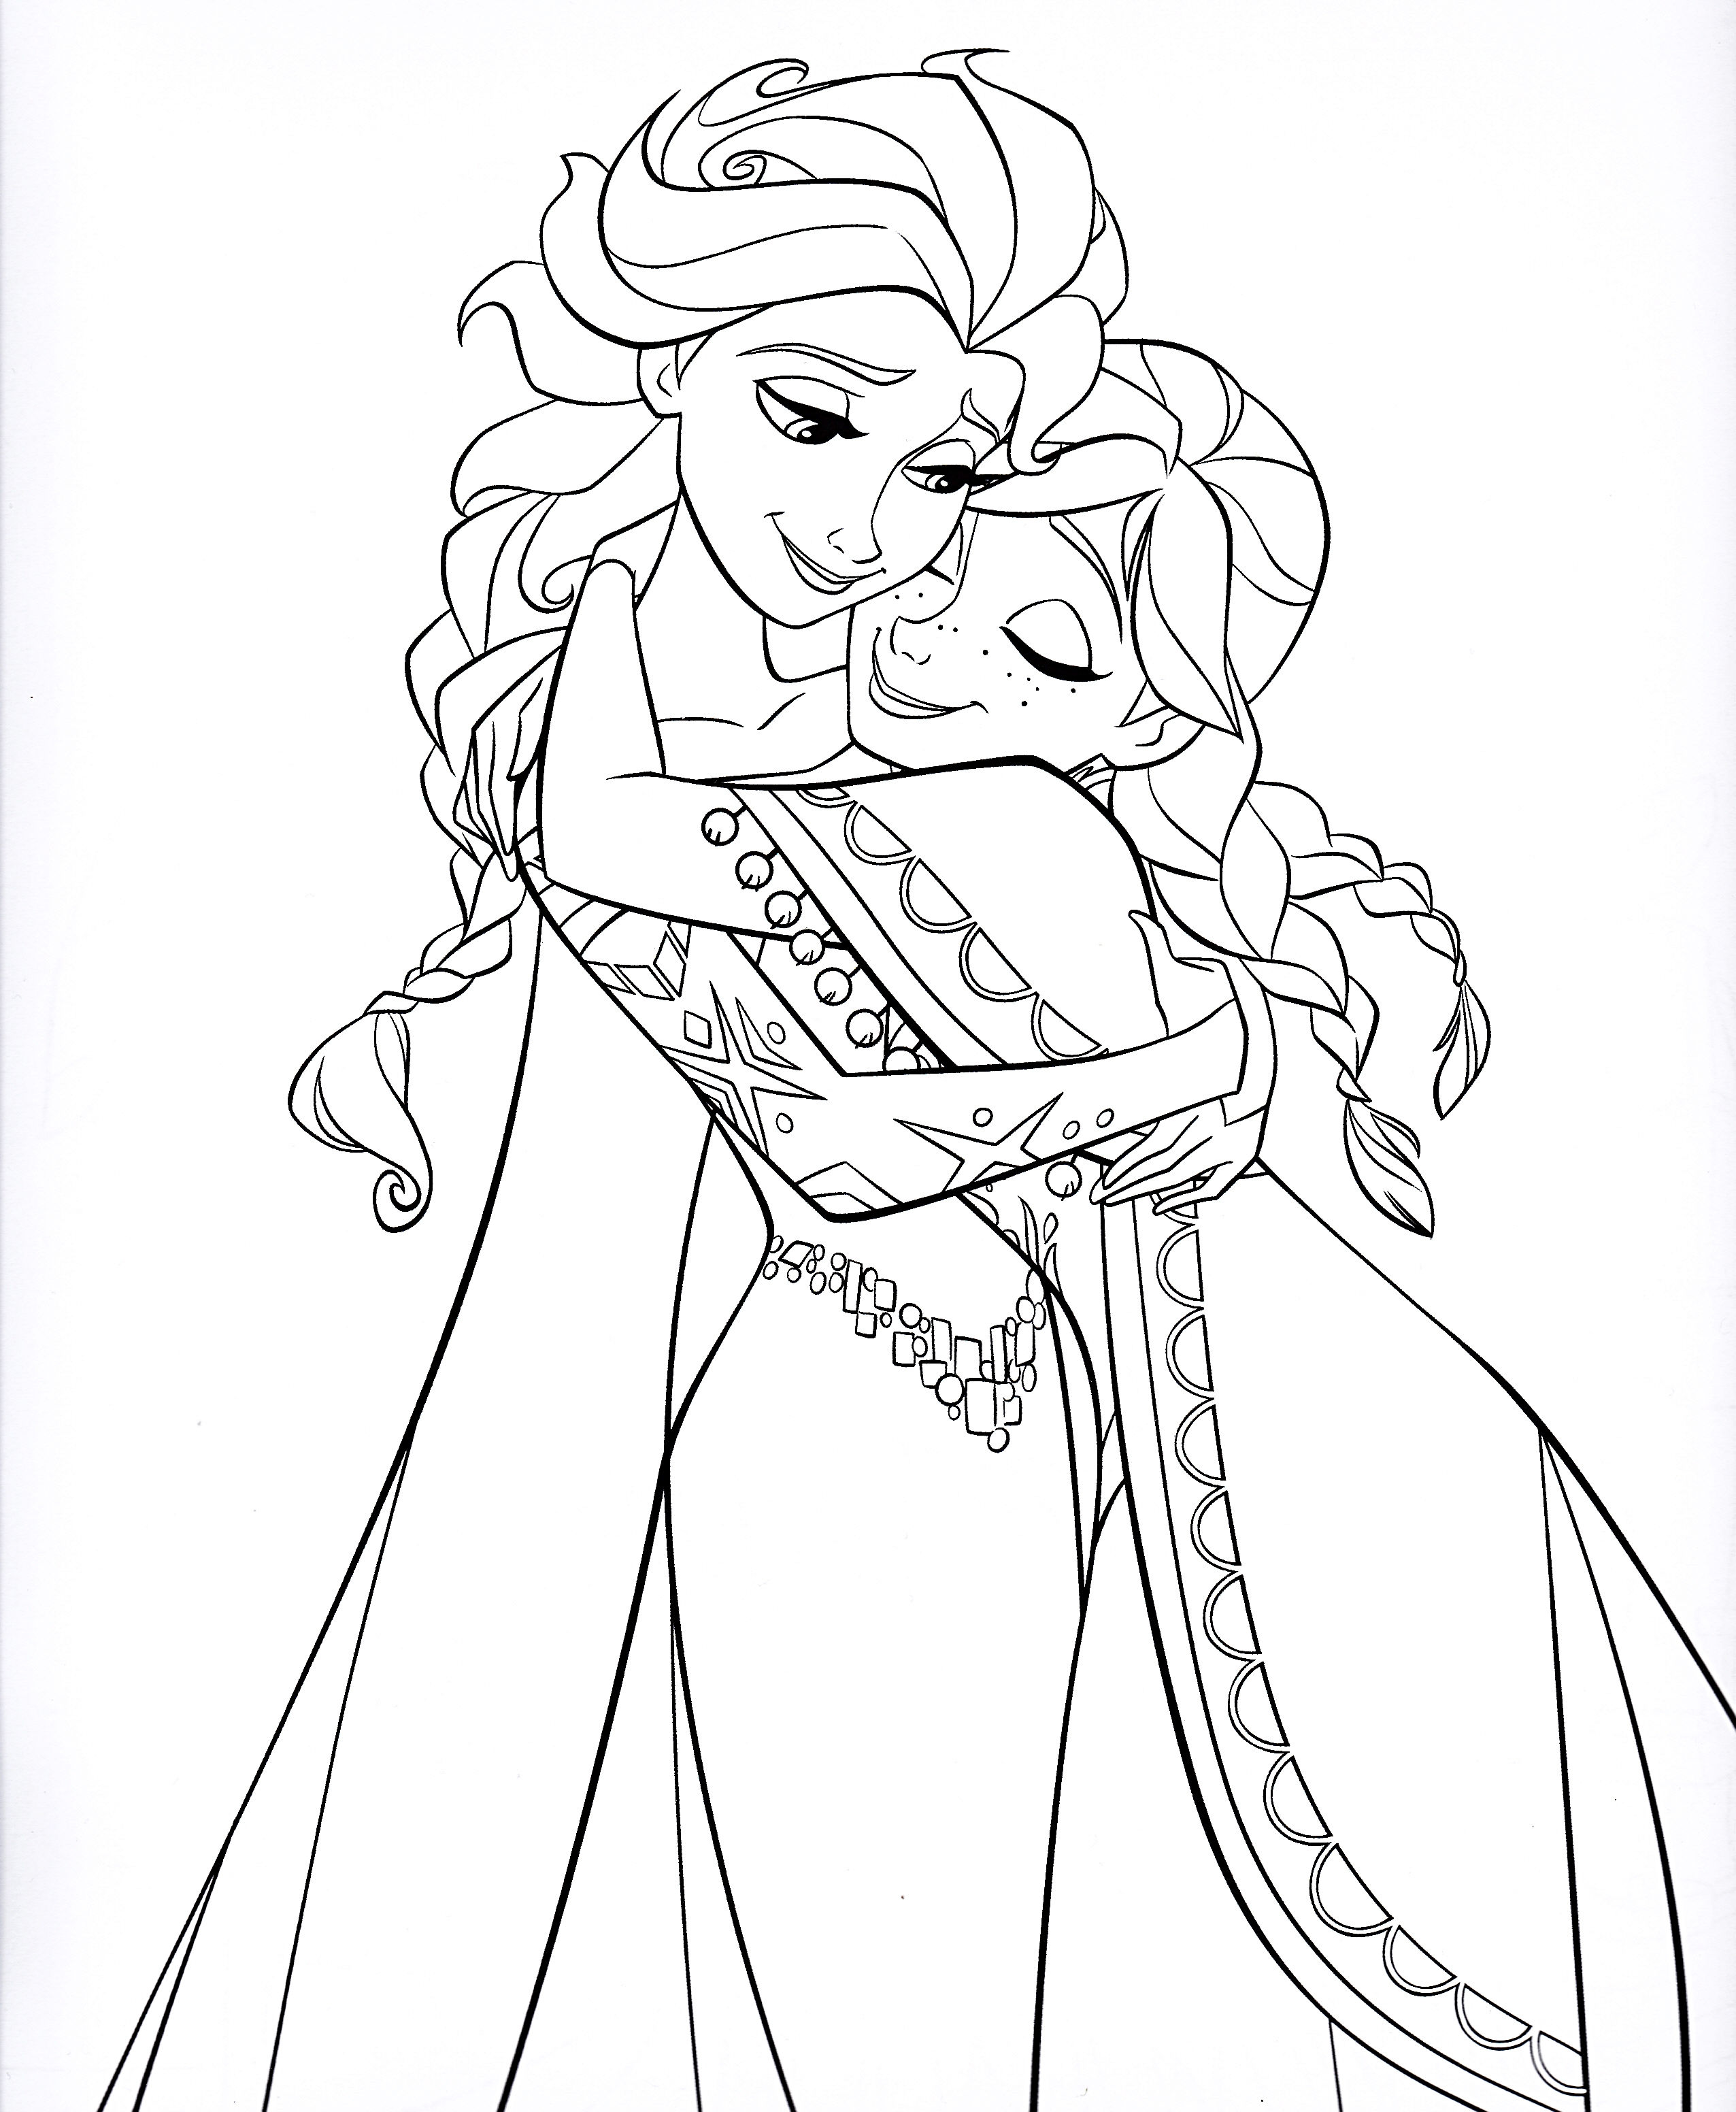 Creative Design Anna Coloring Pages Elsa And Free Page Gallery Of Printable